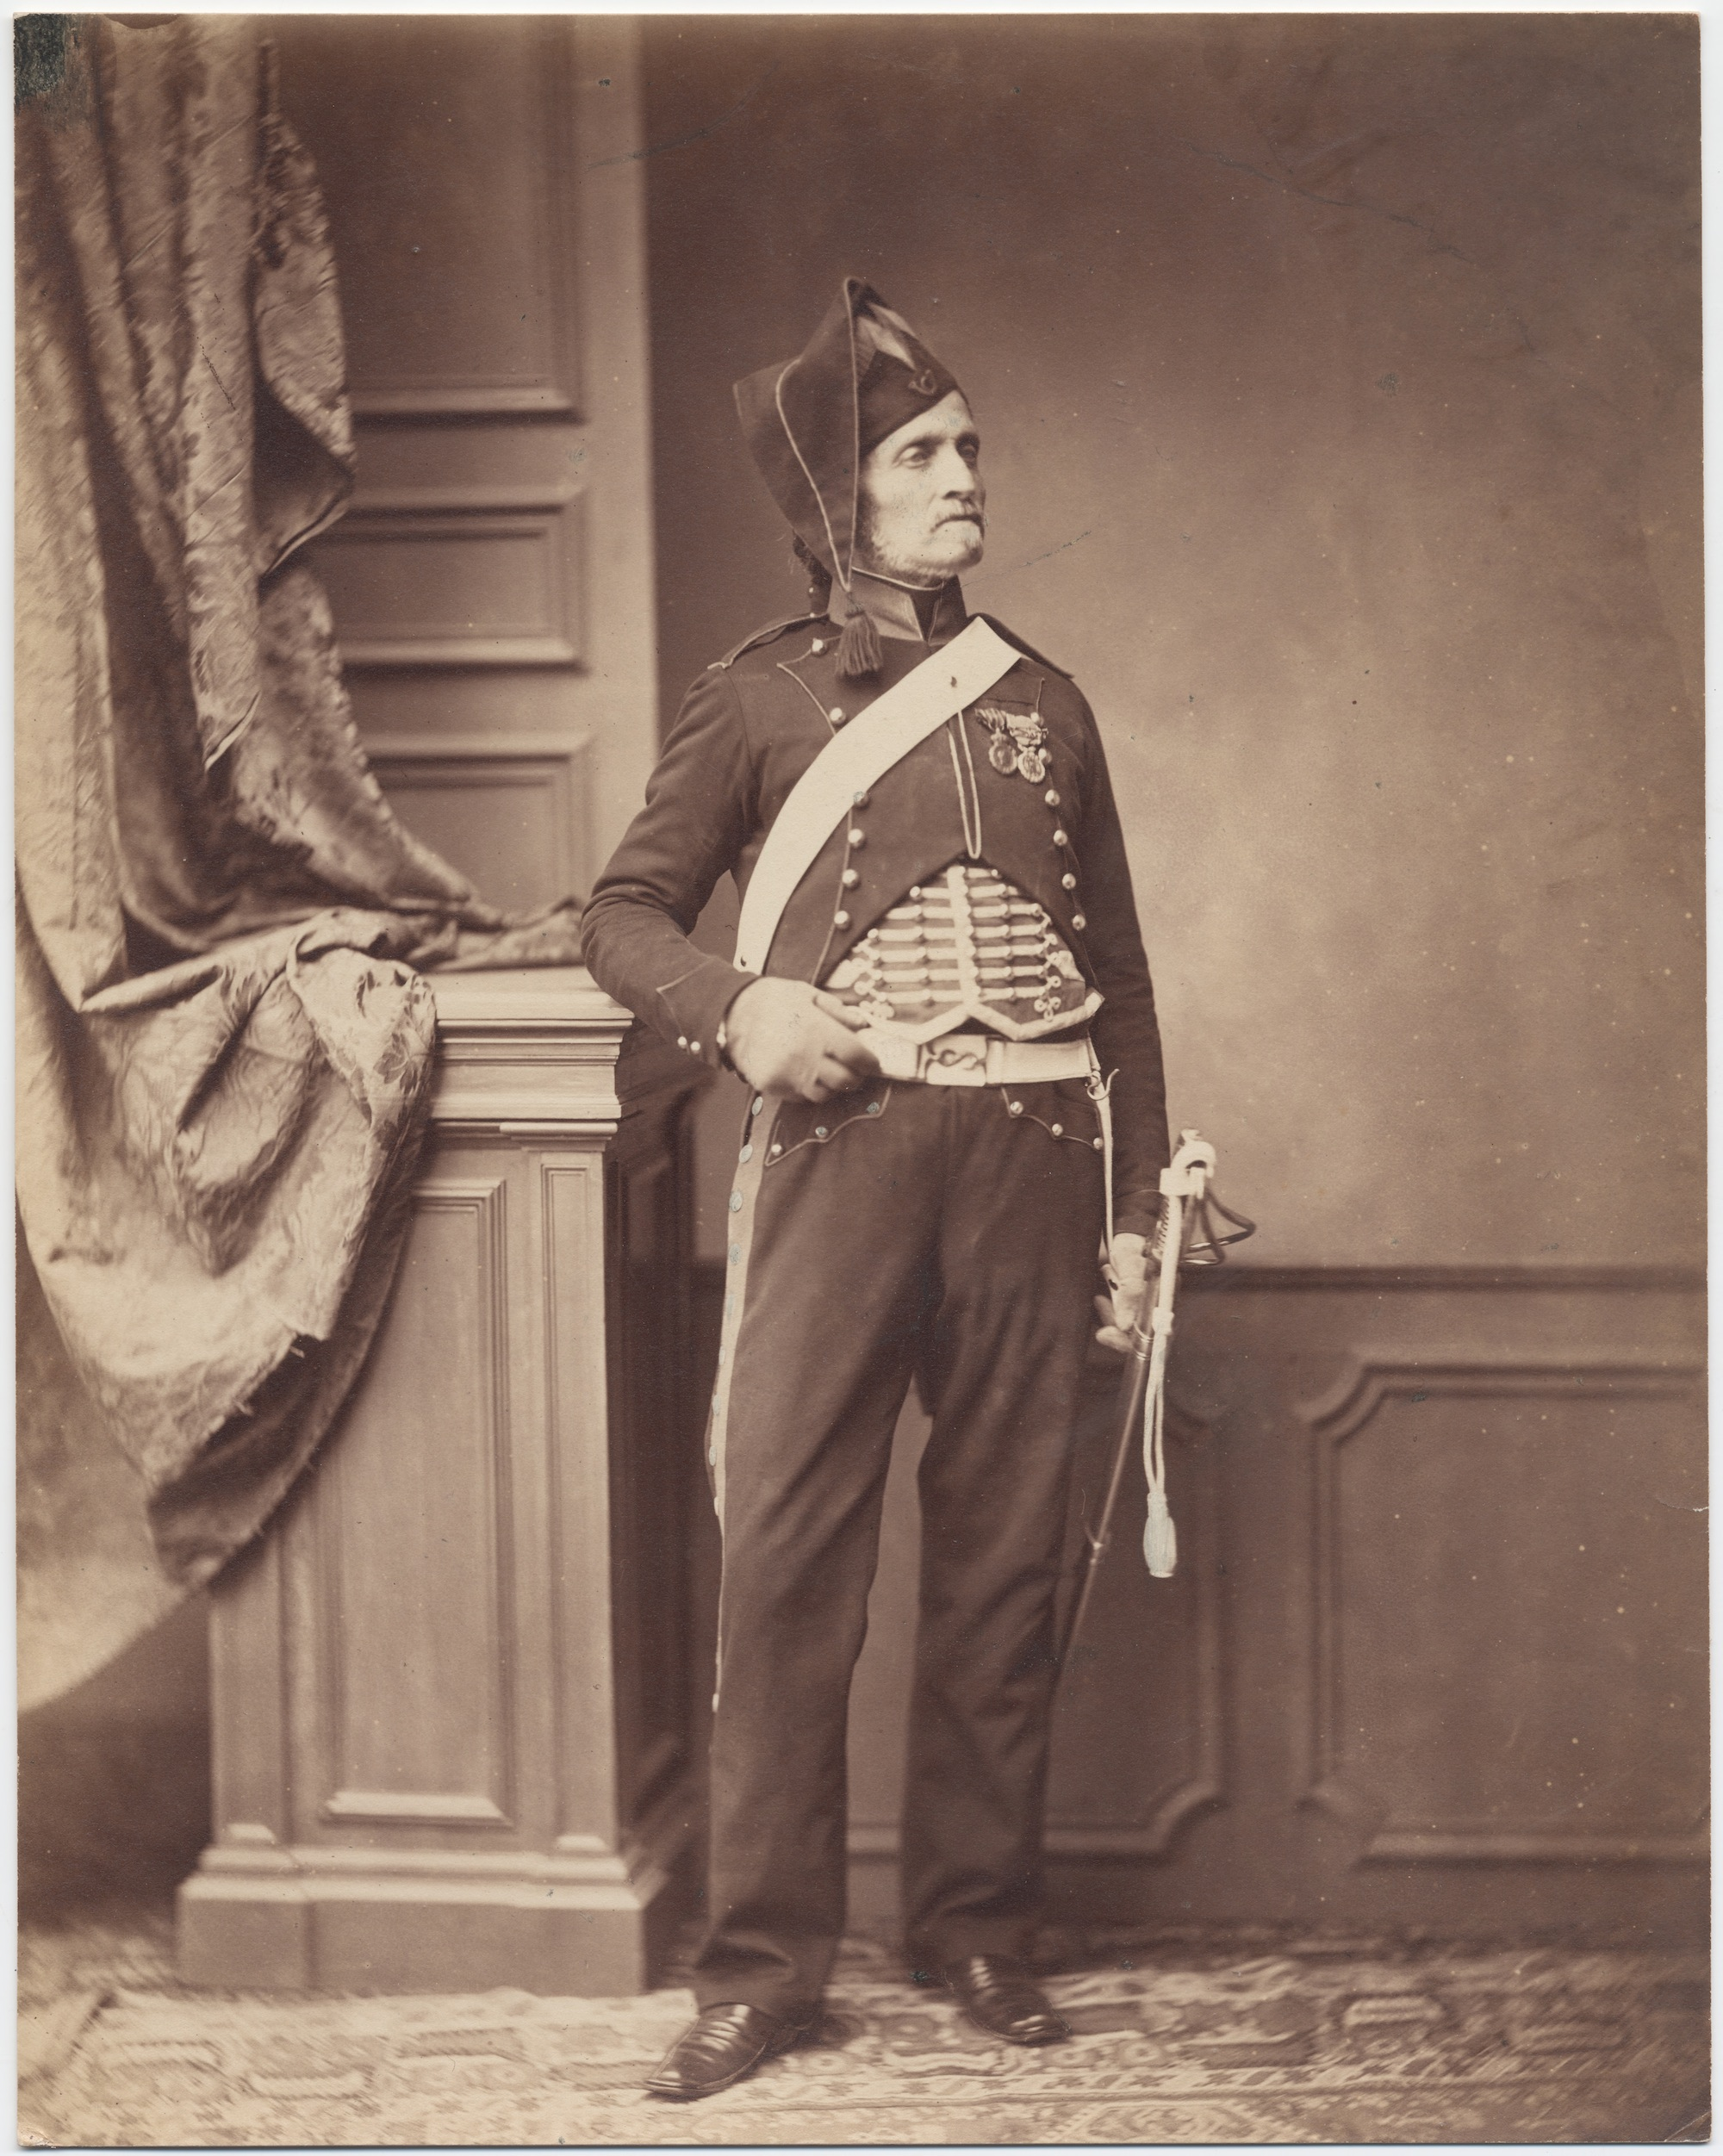 Monsieur Schmit, 2nd Mounted Chasseur Regiment, 1813-14